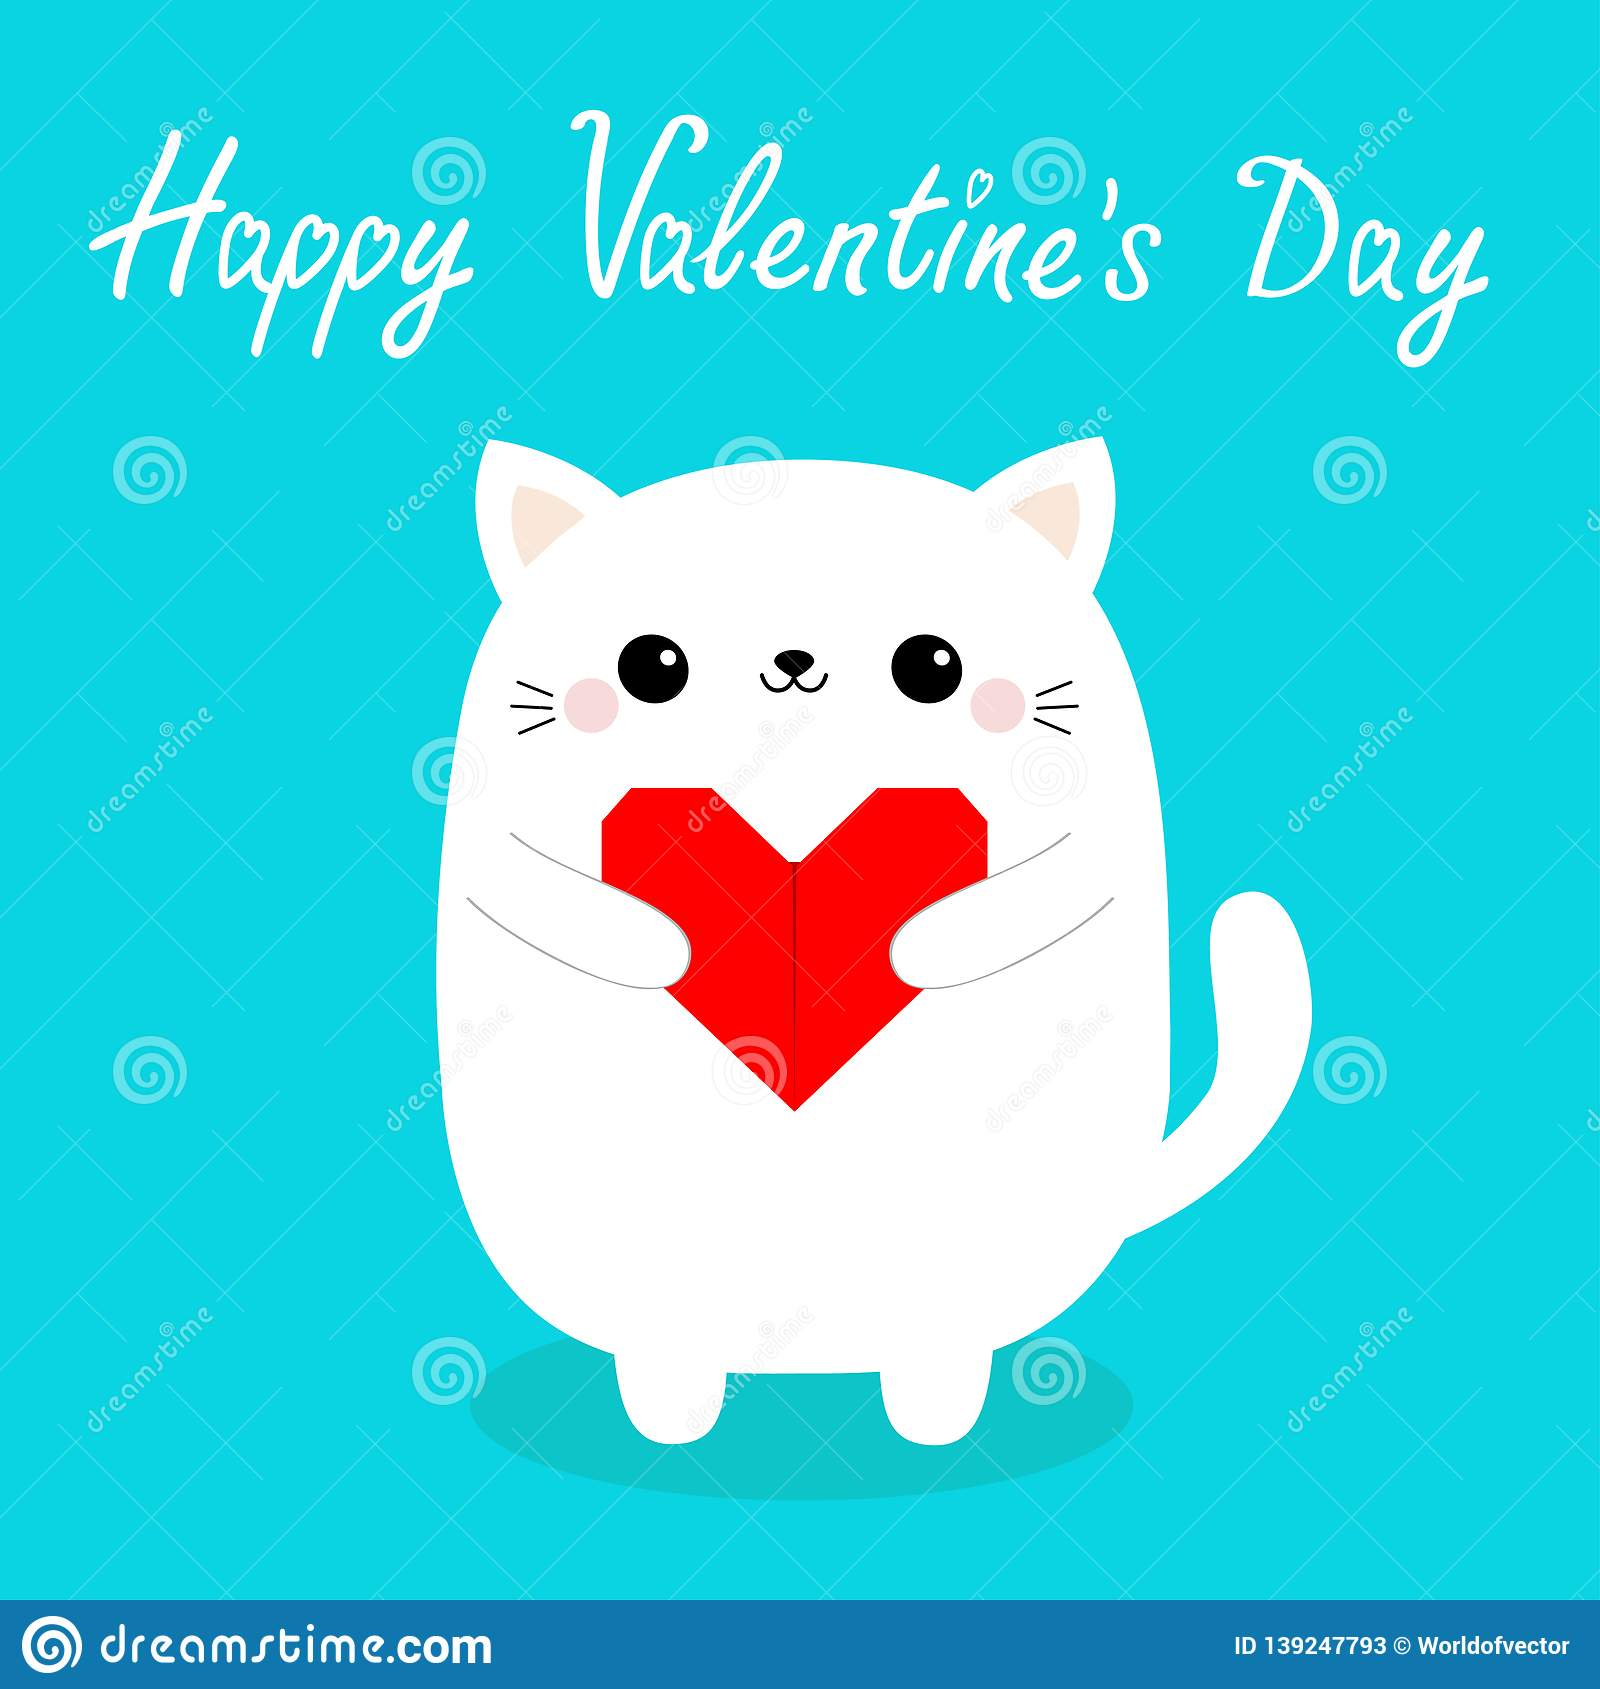 Happy Valentines Day. White baby cat kitten head face holding red origami paper heart. Cute cartoon kawaii funny kitty animal